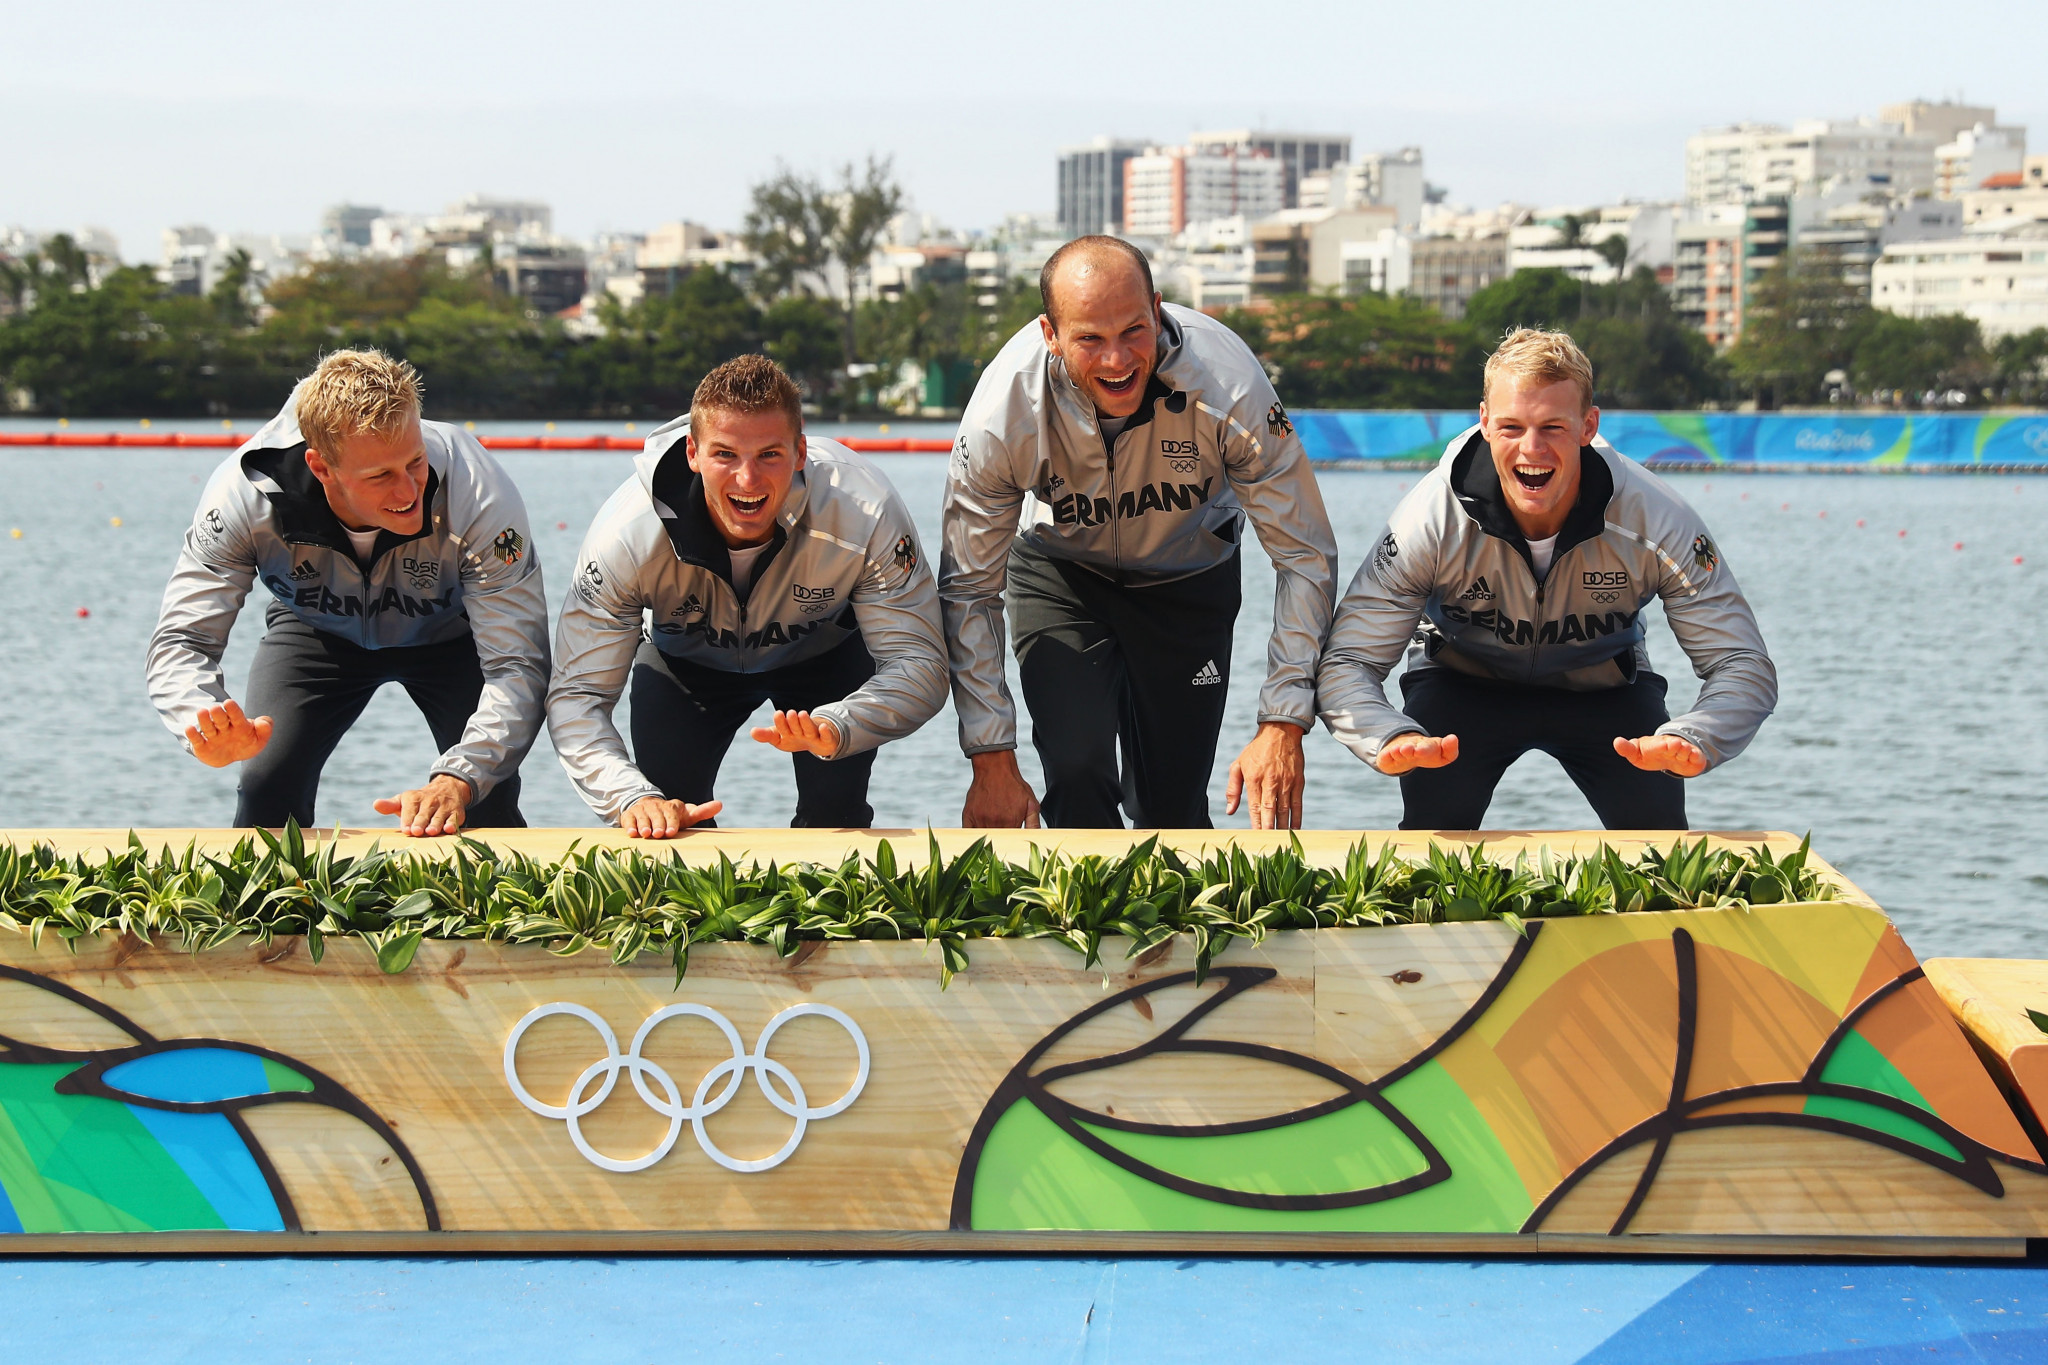 Men's K4 500m was not on the Rio 2016 programme, but Germany did win men's K4 1,000m gold ©Getty Images